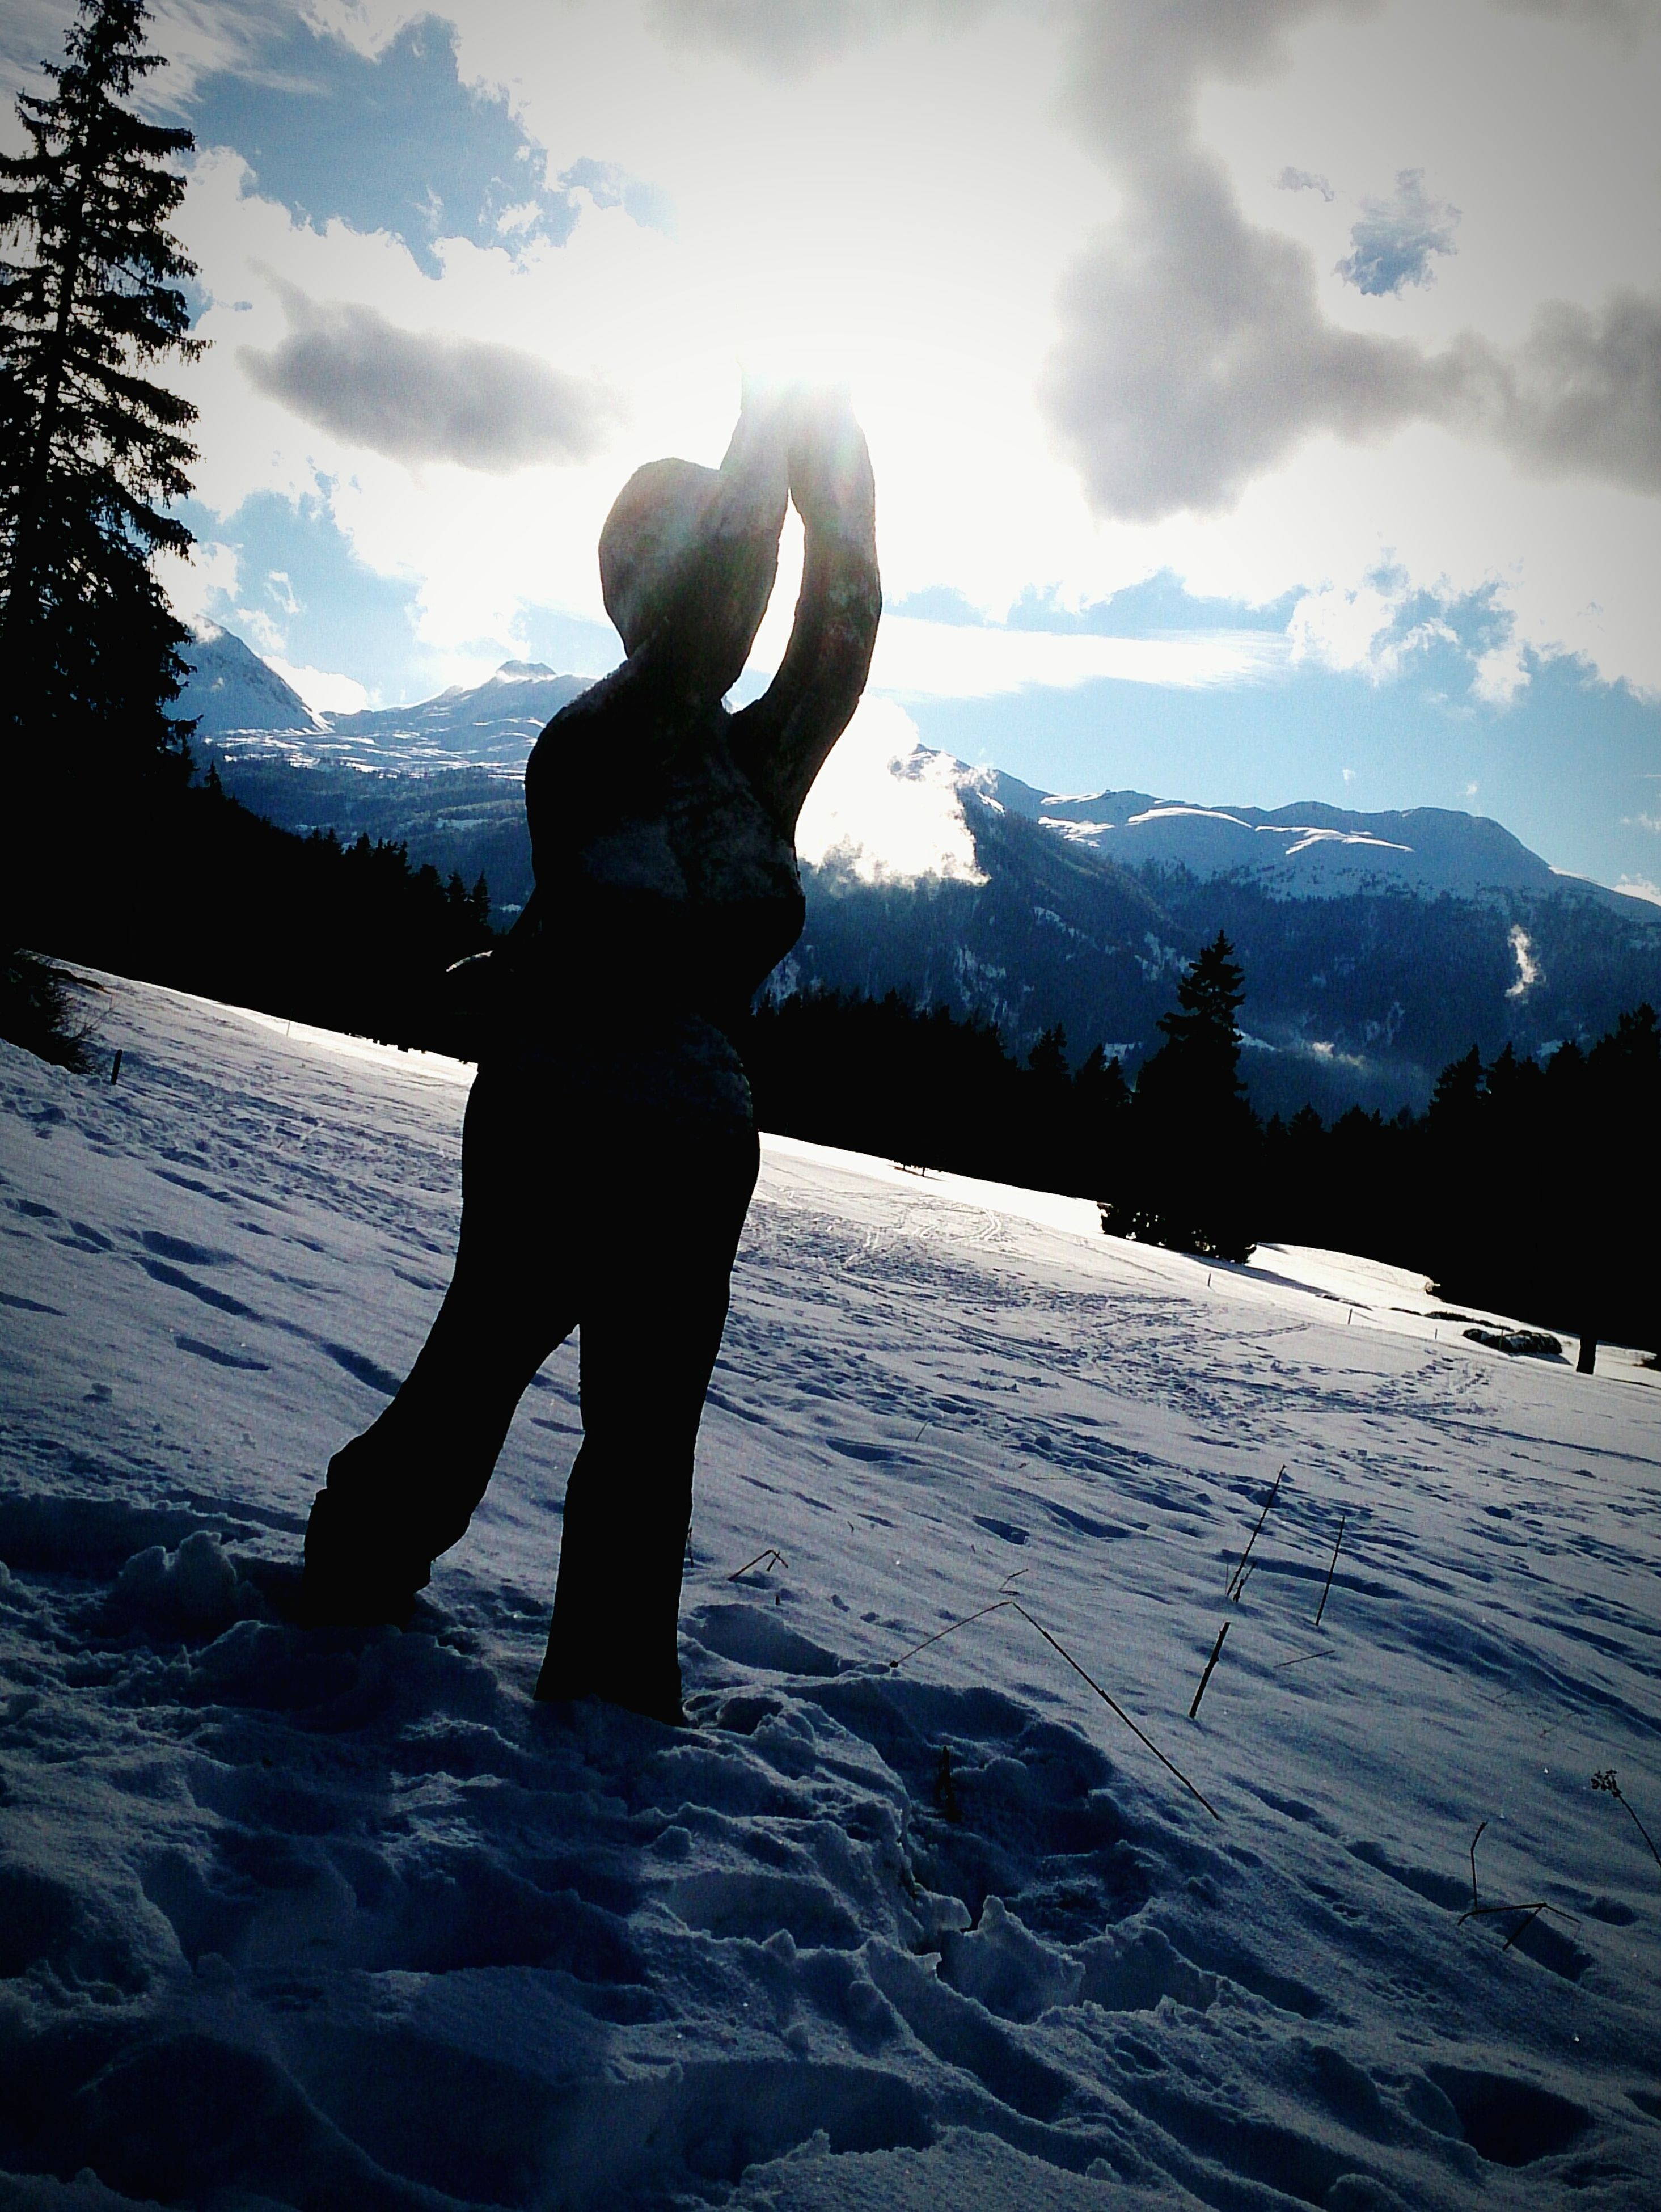 snow, winter, cold temperature, full length, season, lifestyles, leisure activity, weather, mountain, rear view, sky, warm clothing, standing, tranquil scene, tranquility, nature, beauty in nature, scenics